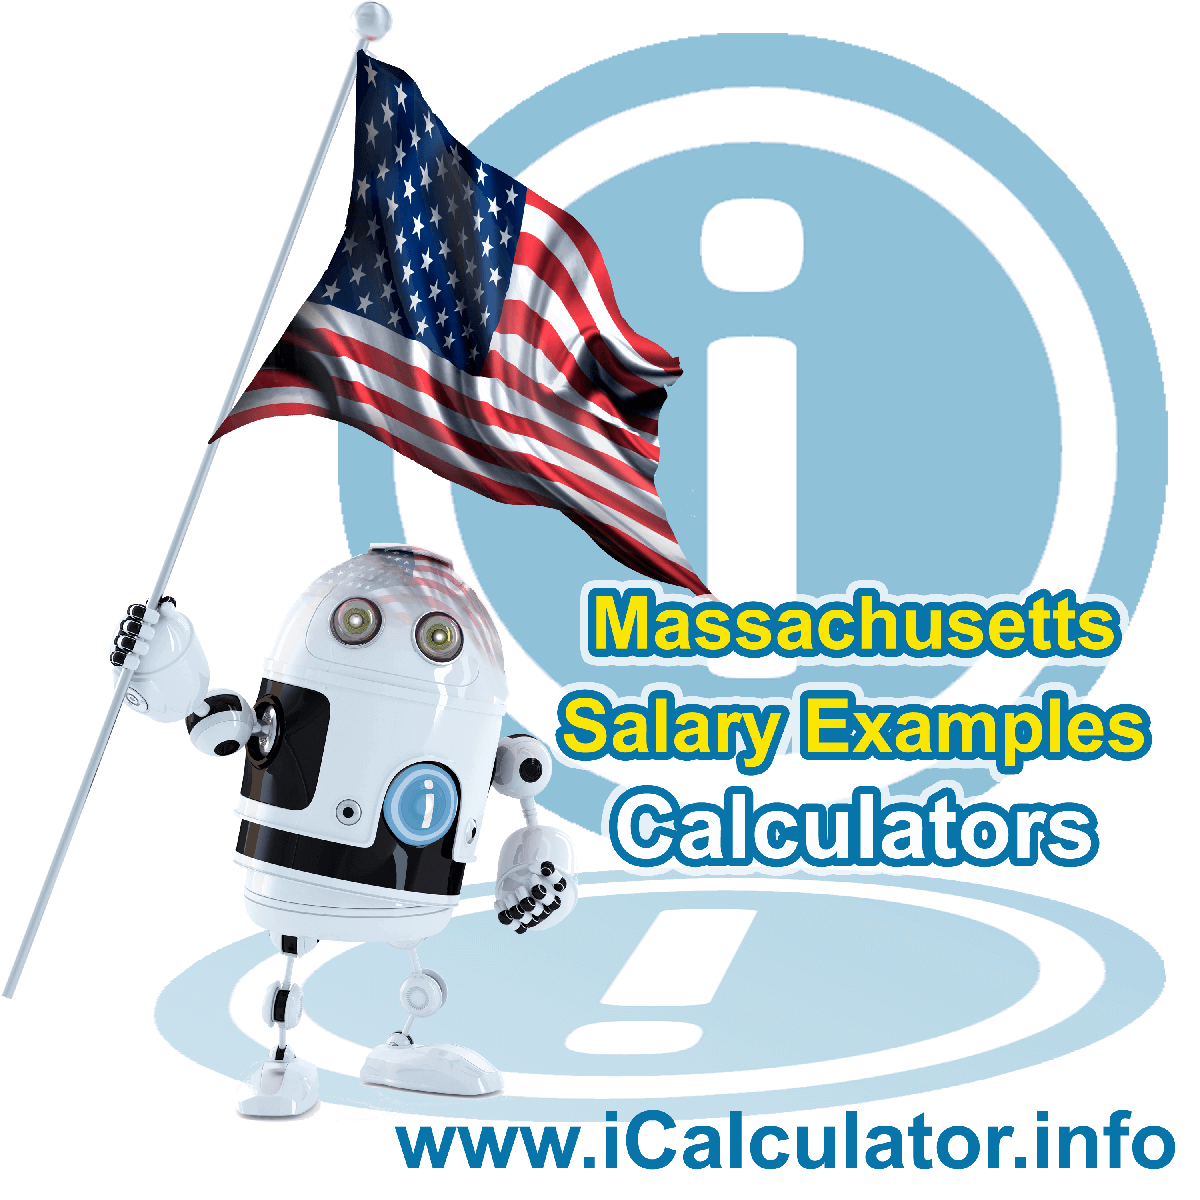 Massachusetts Salary Example for $20.00 in 2021 | iCalculator | $20.00 salary example for employee and employer paying Massachusetts State tincome taxes. Detailed salary after tax calculation including Massachusetts State Tax, Federal State Tax, Medicare Deductions, Social Security, Capital Gains and other income tax and salary deductions complete with supporting Massachusetts state tax tables